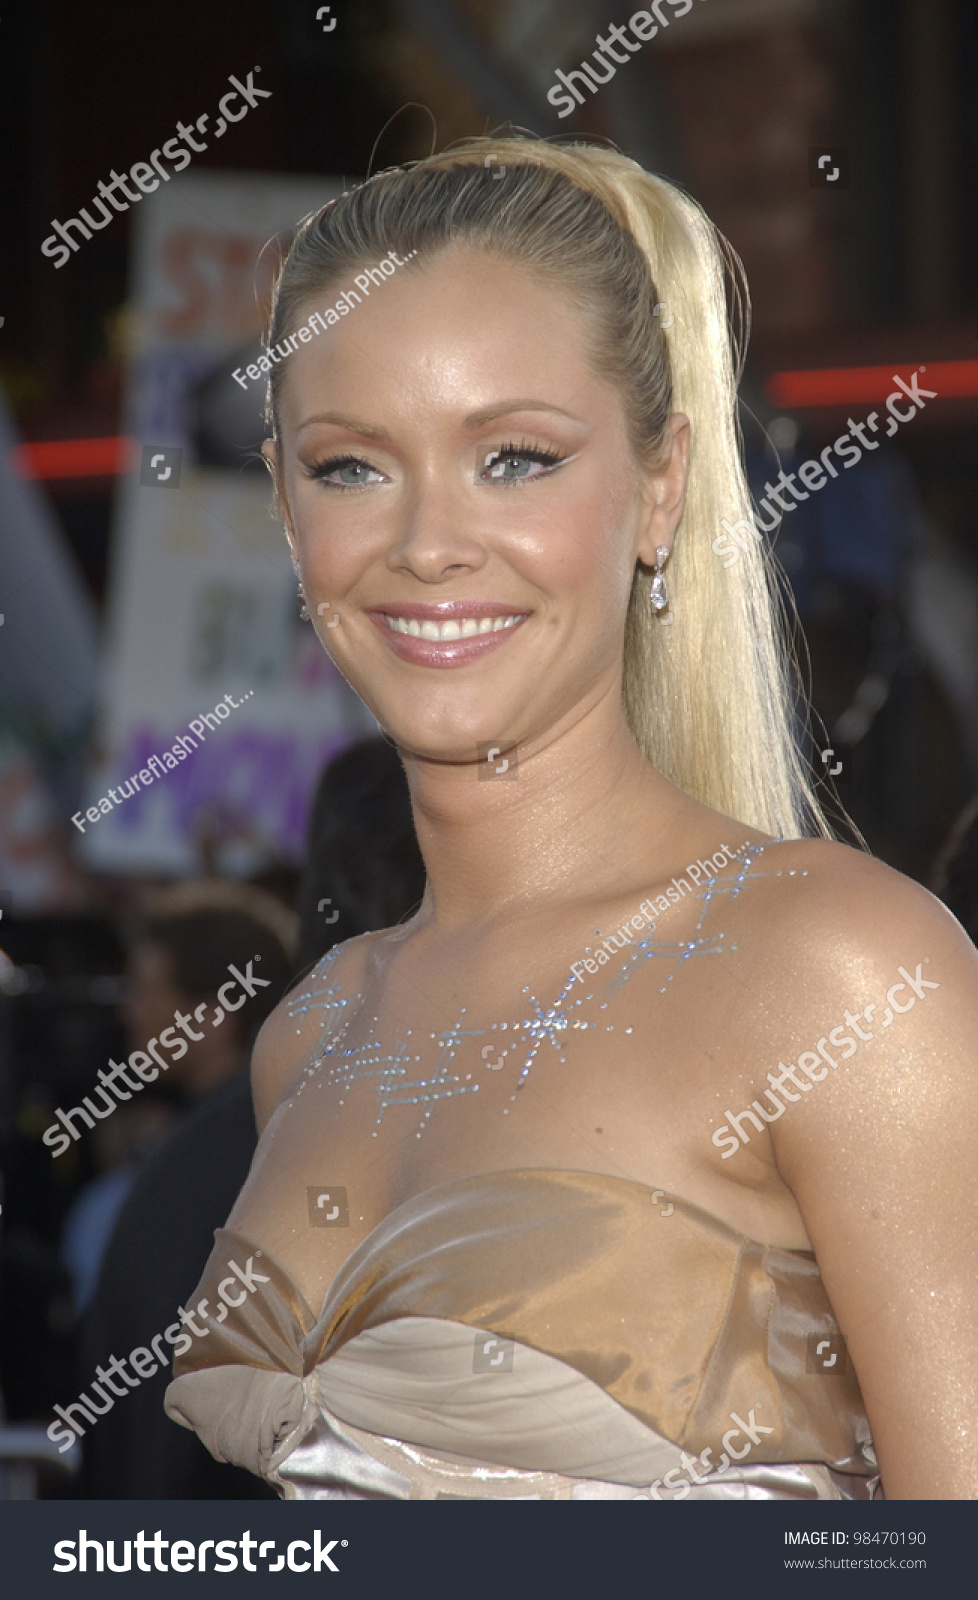 actress kristanna loken world premiere her stock photo & image